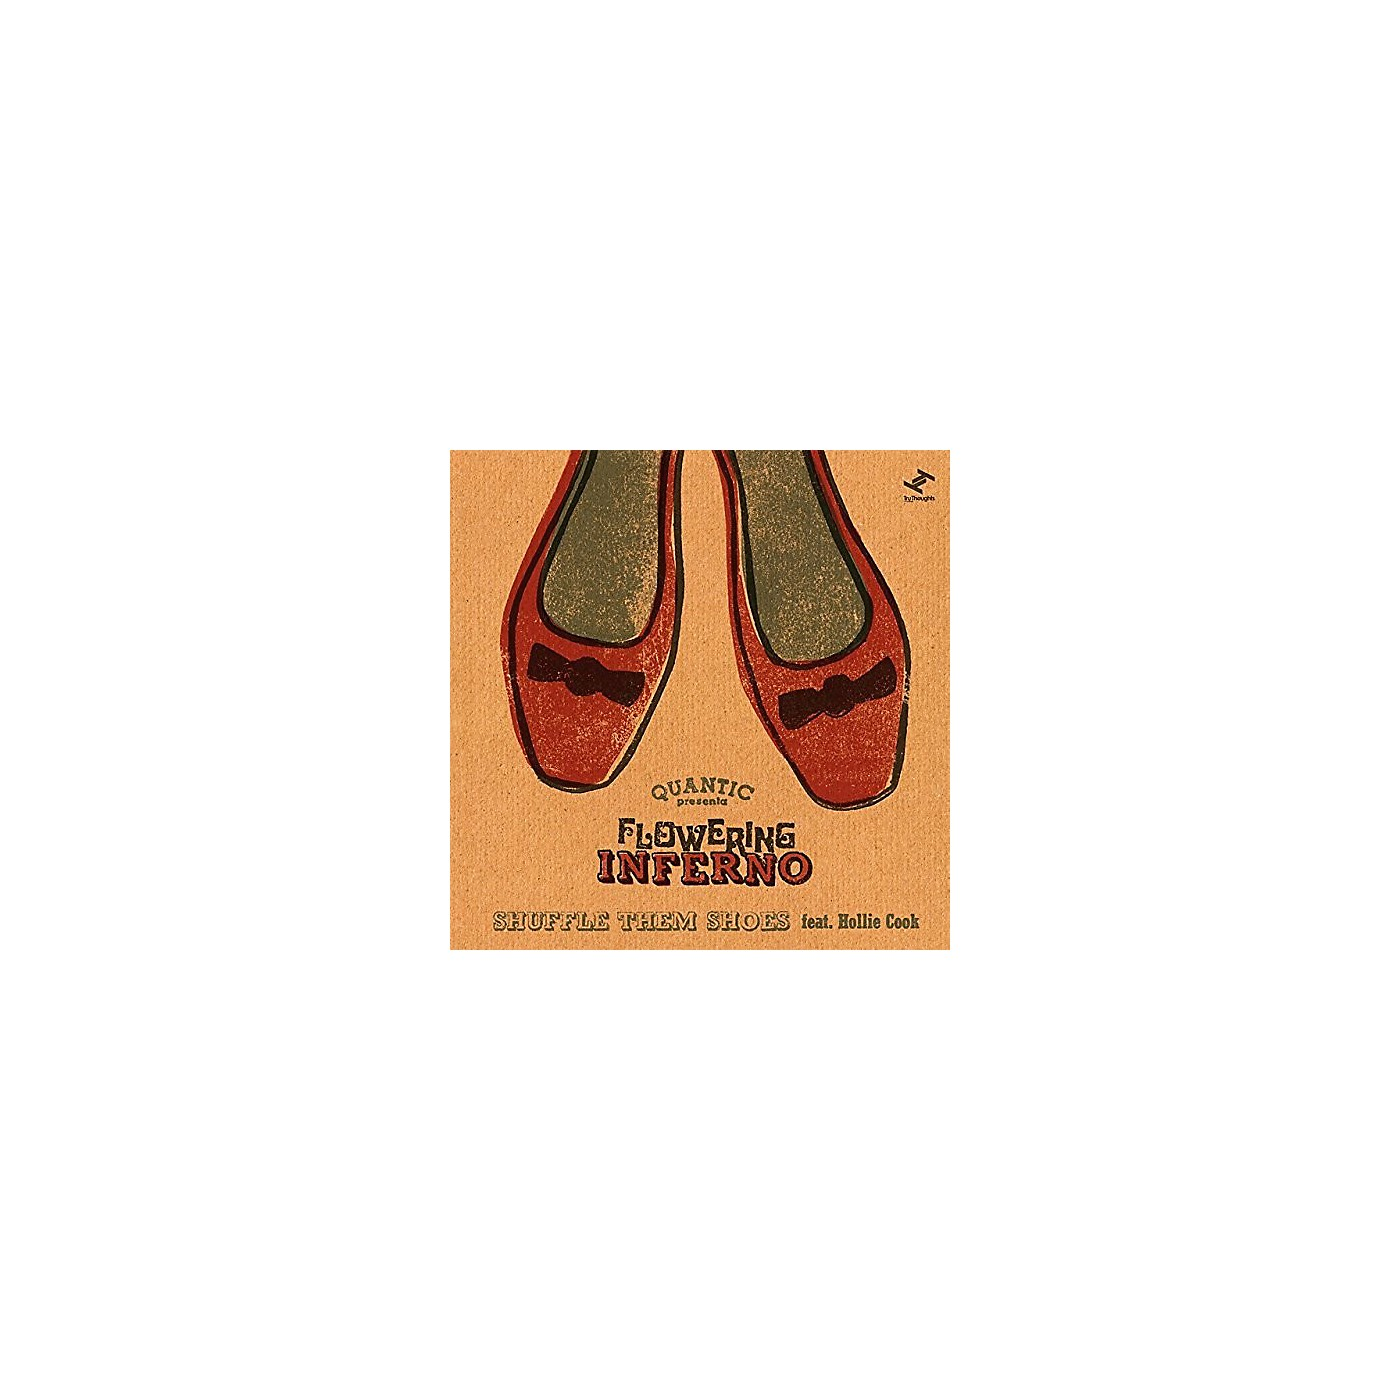 Alliance Quantic Presenta Flowering Inferno -  Shuffle Them Shoes (Feat. Hollie Cook) thumbnail